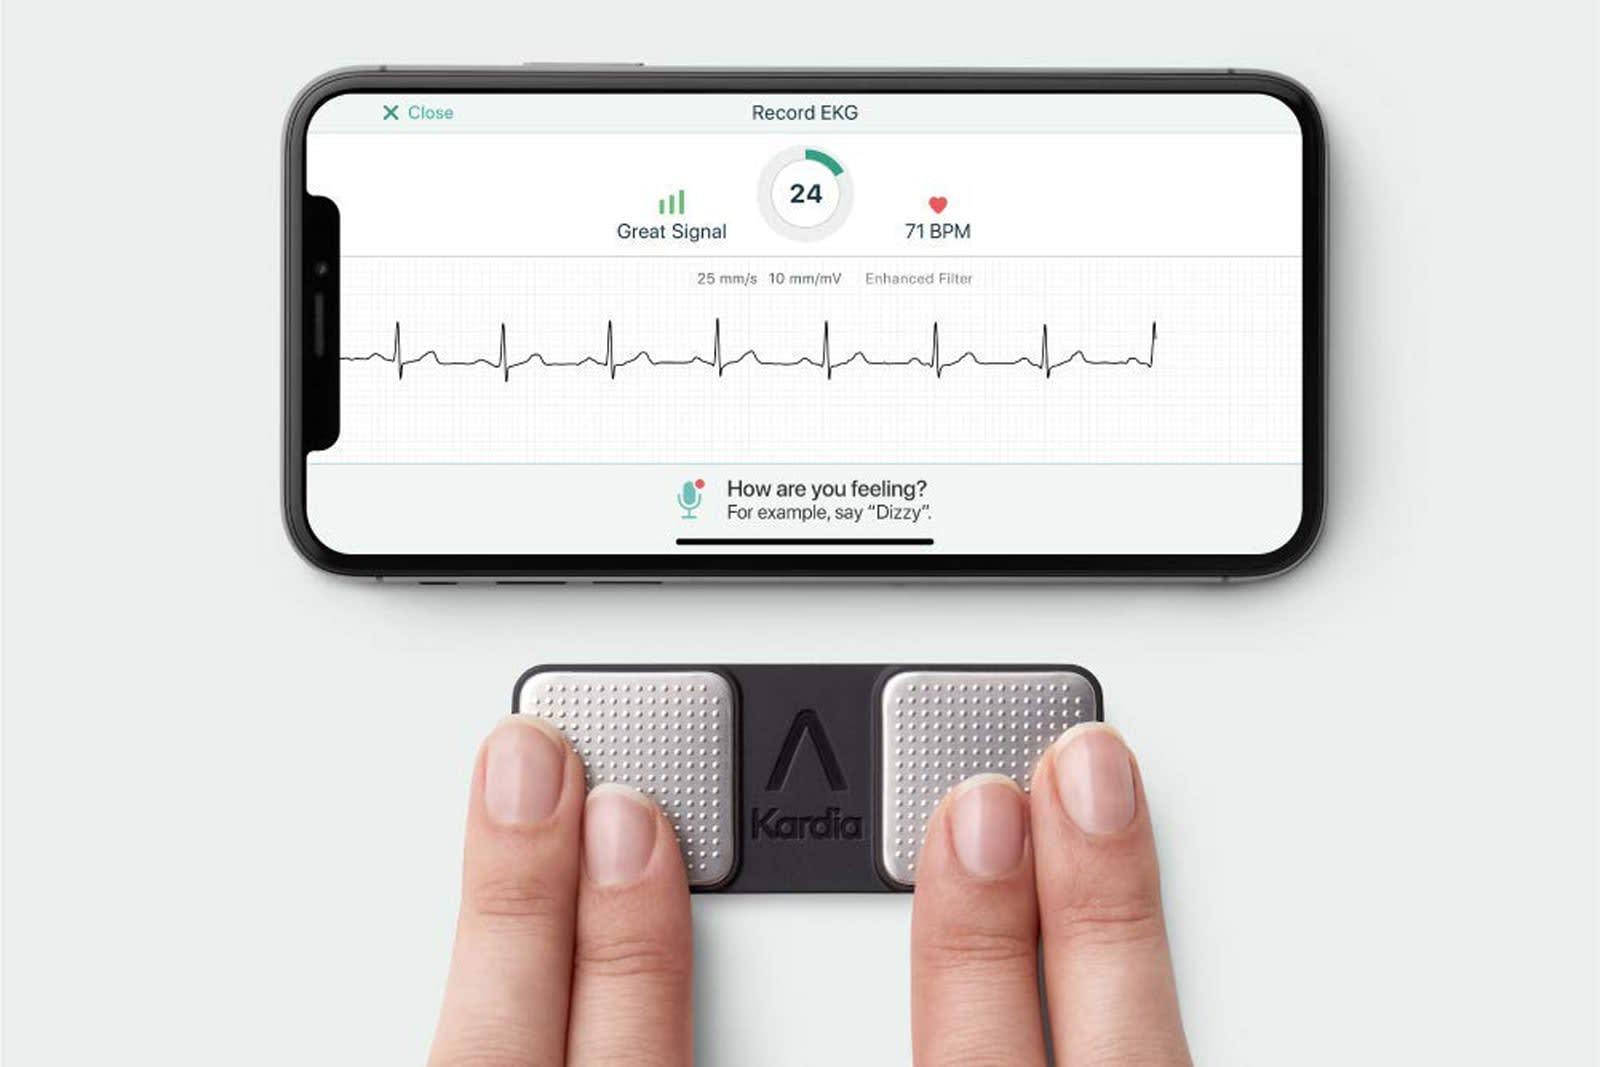 FDA clears first personal ECG device to detect 3 heart arrhythmias